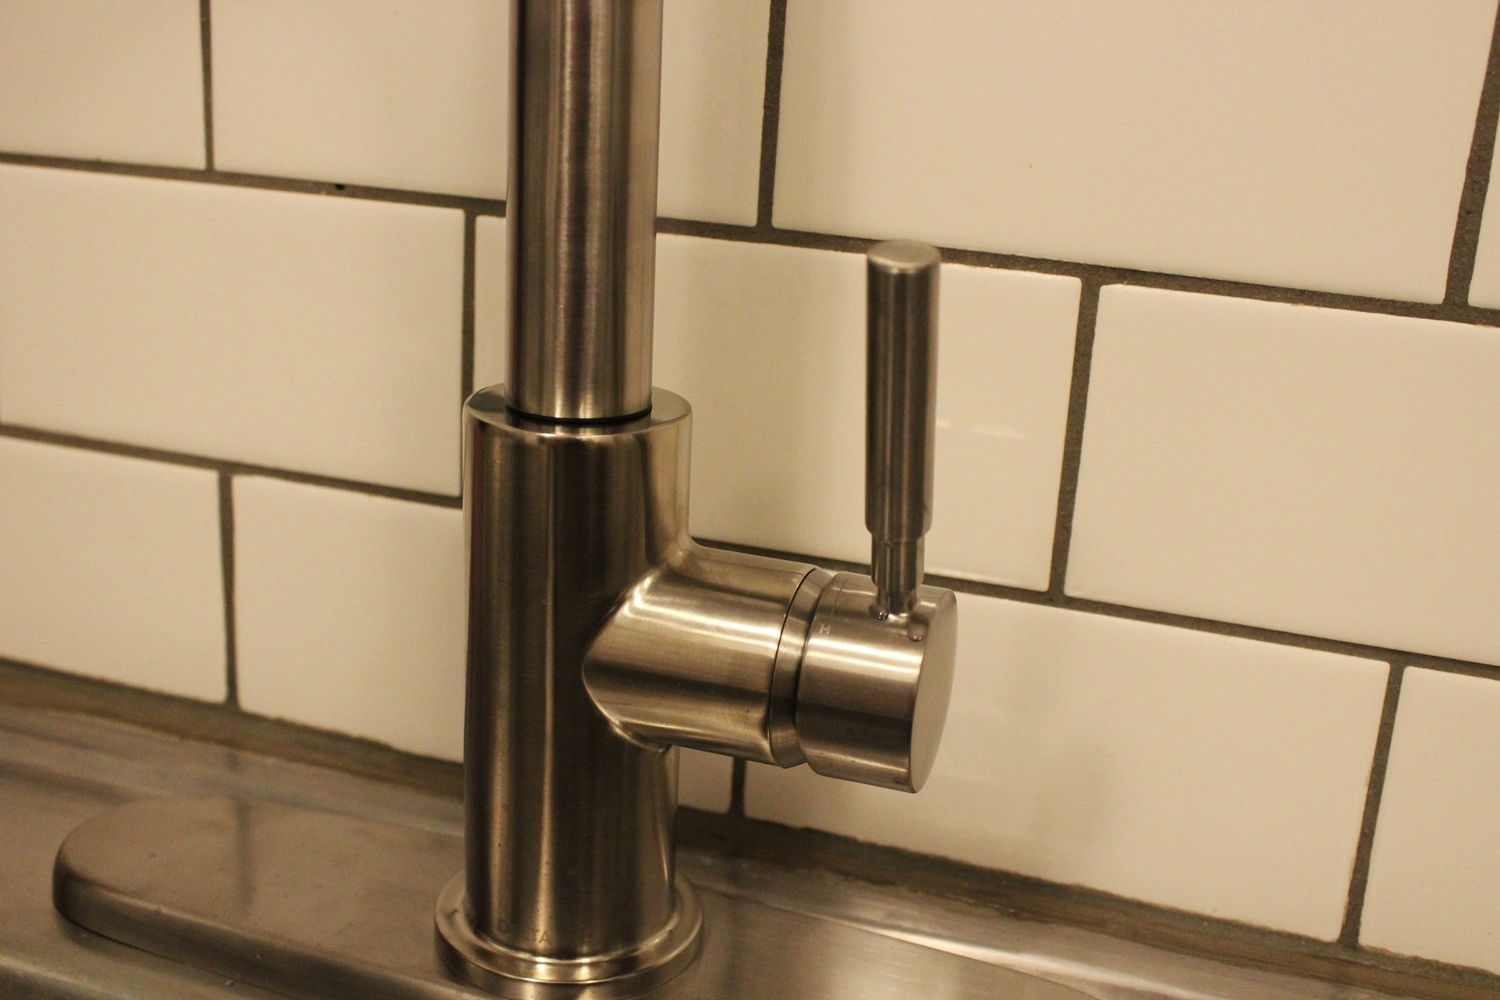 Kitchen sprayer faucet closer look to base